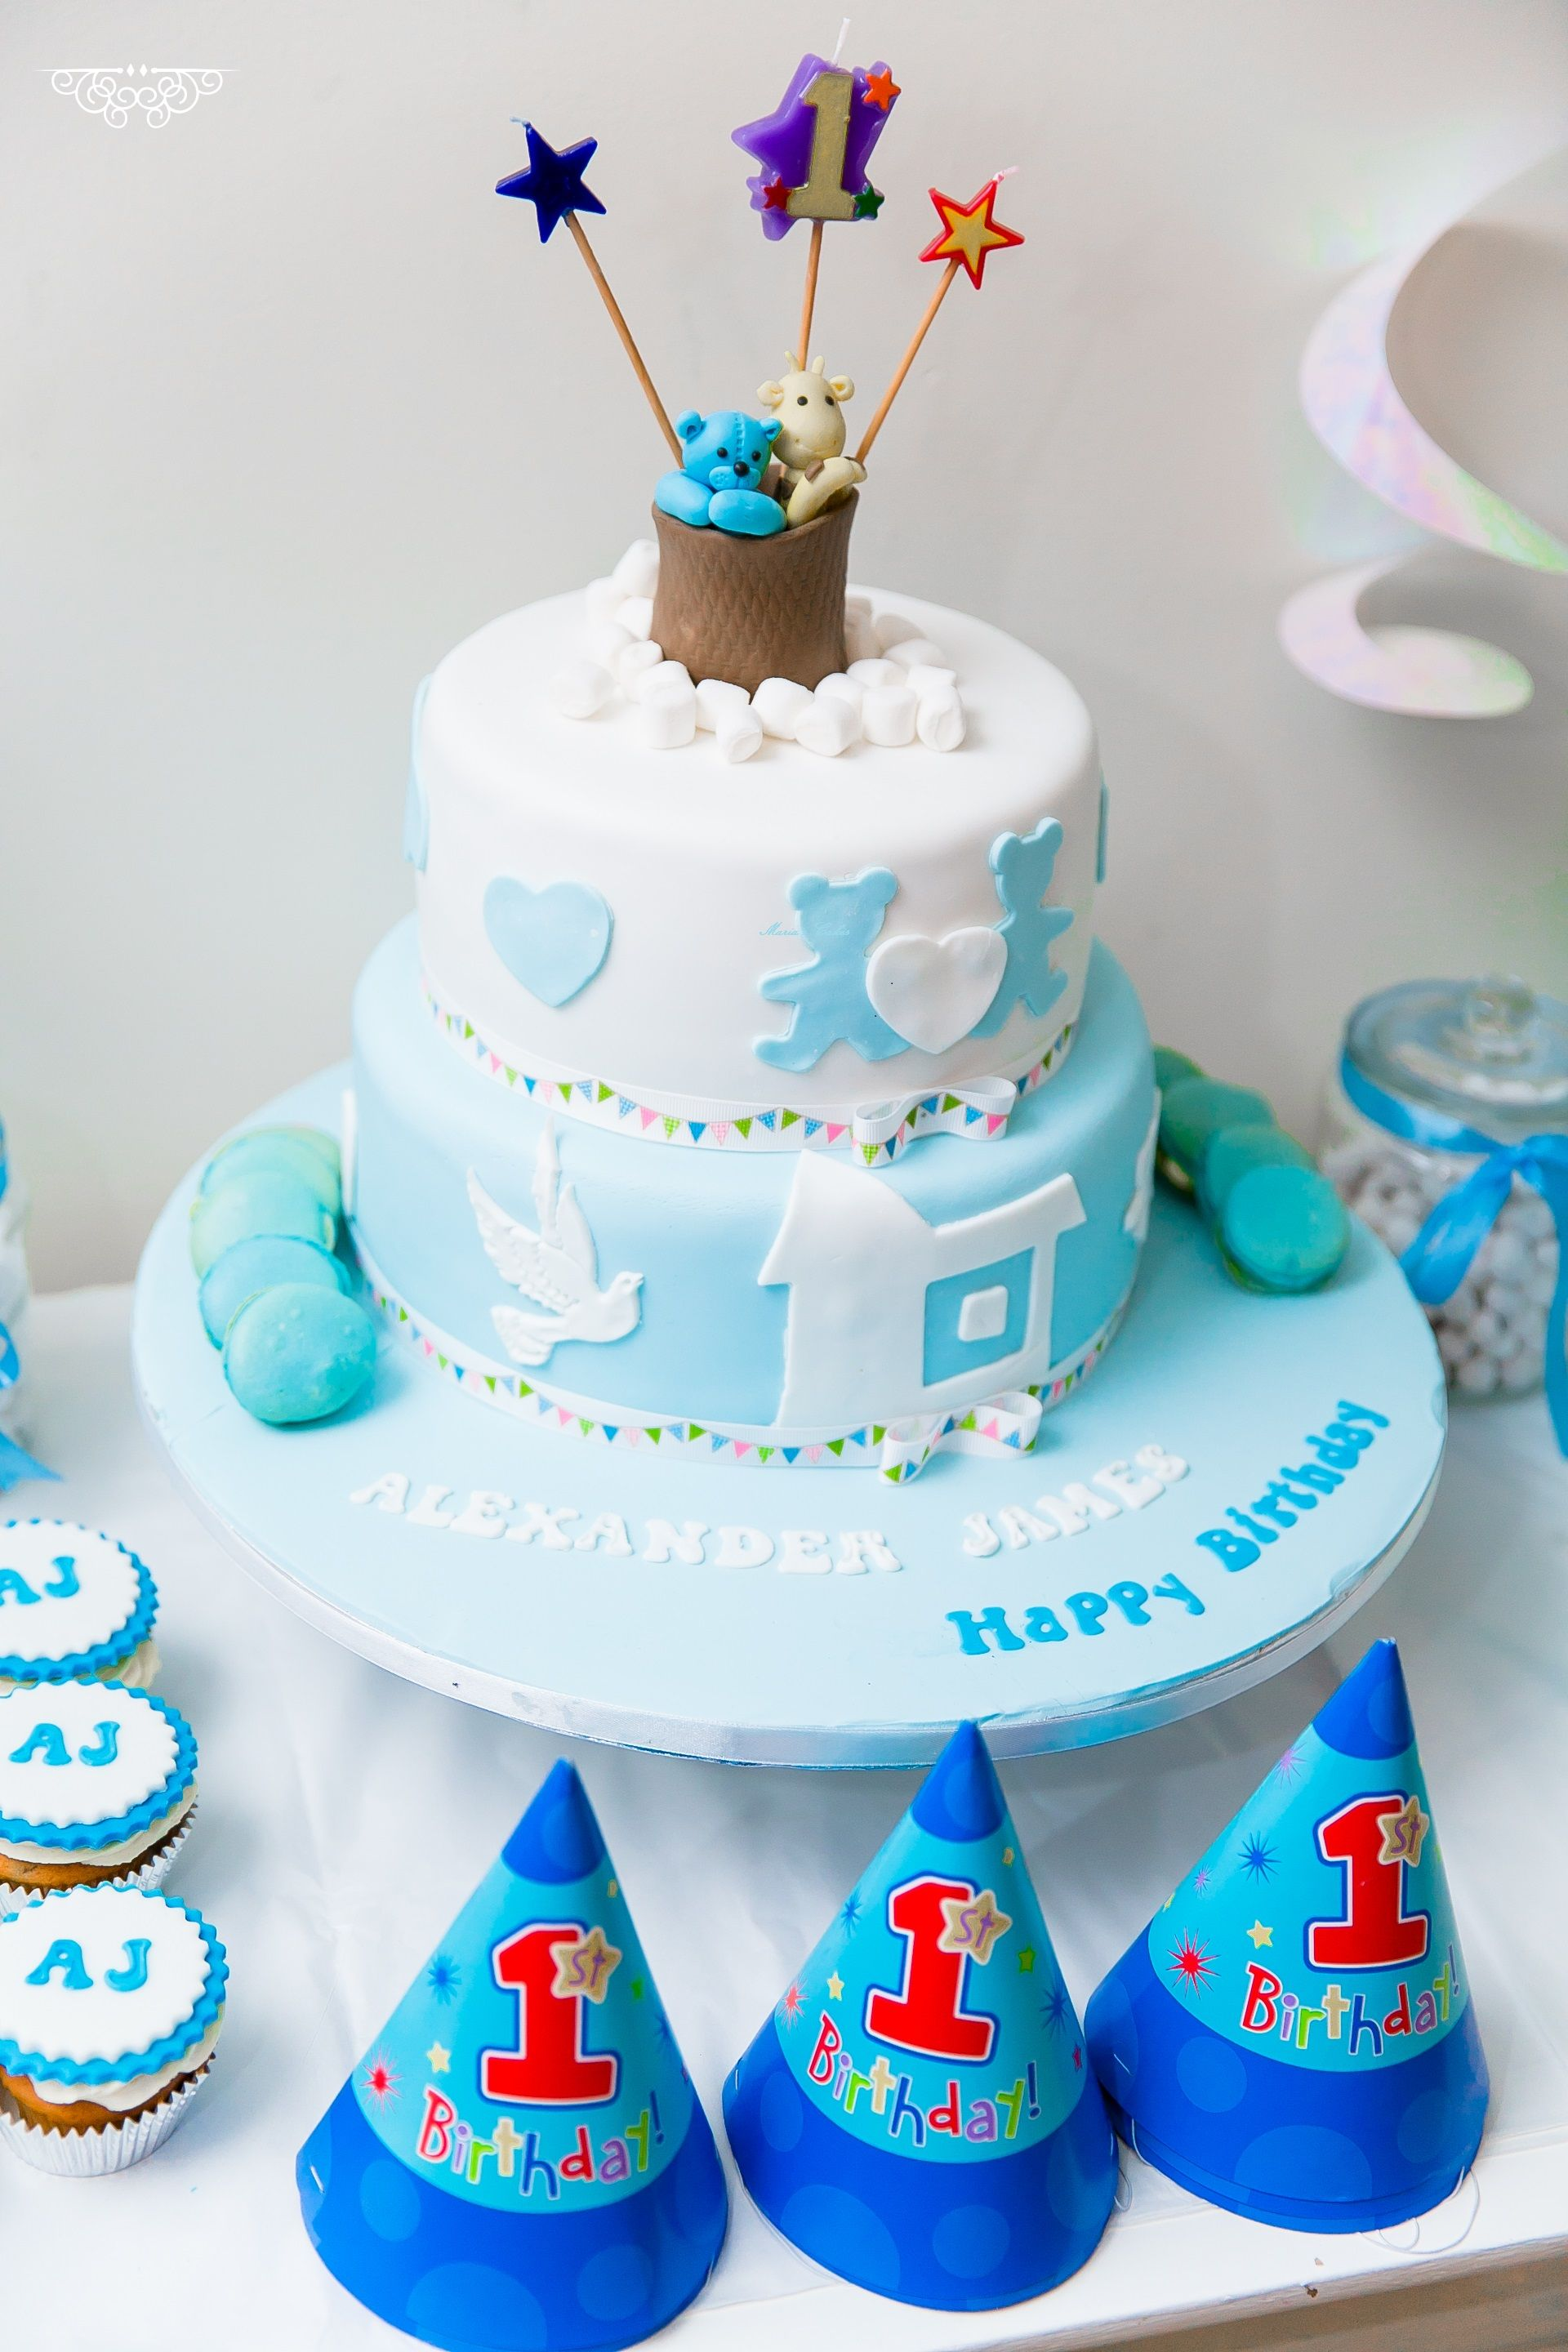 Cake Ideas For Baby Boy 1st Birthday : 1st Baby Boy Birthday Cake Cake Ideas by Maria s Cakes ...